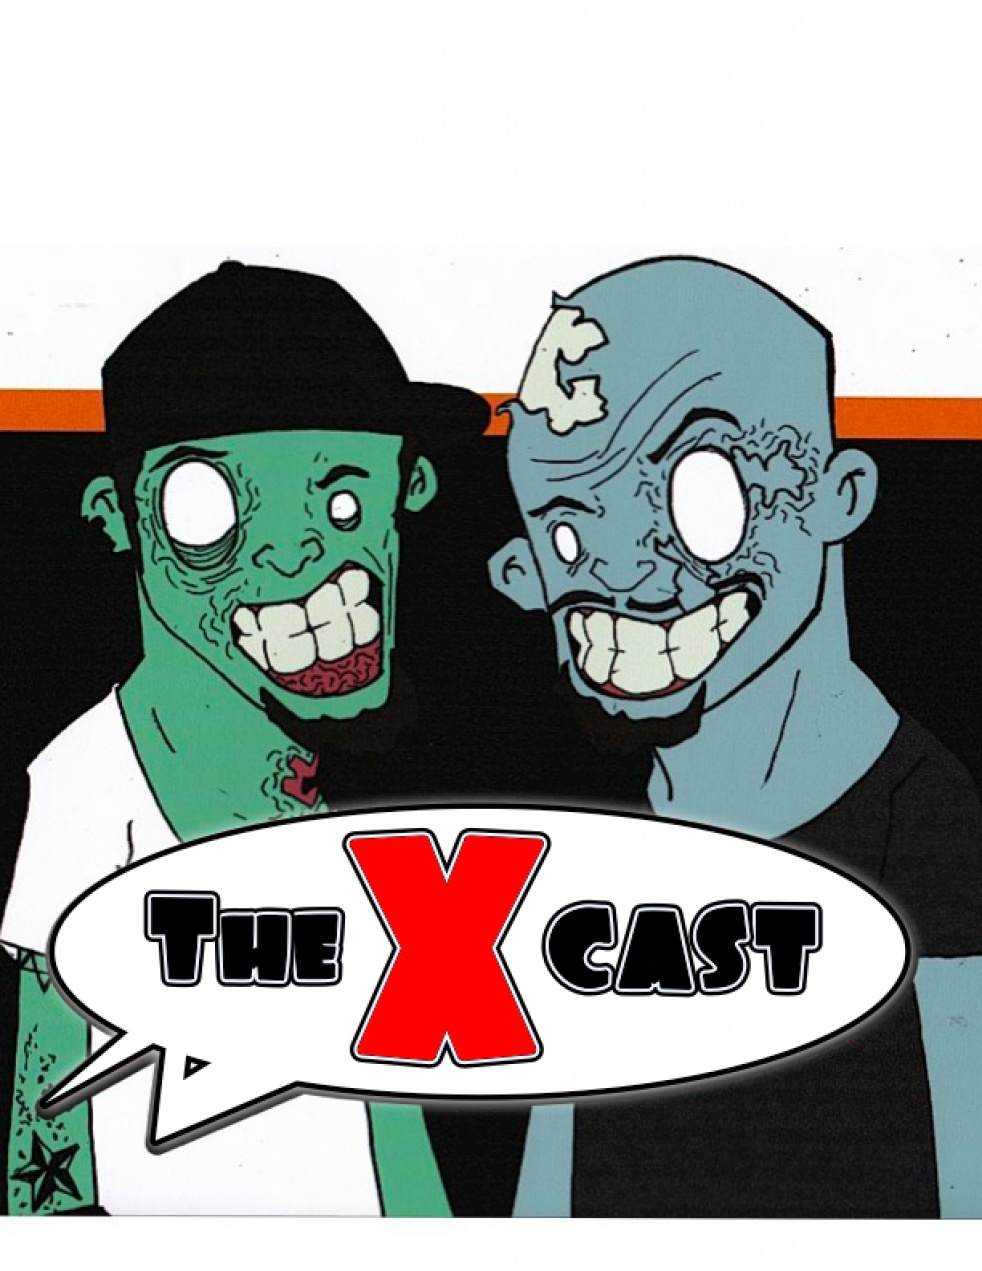 The Xcast - show cover